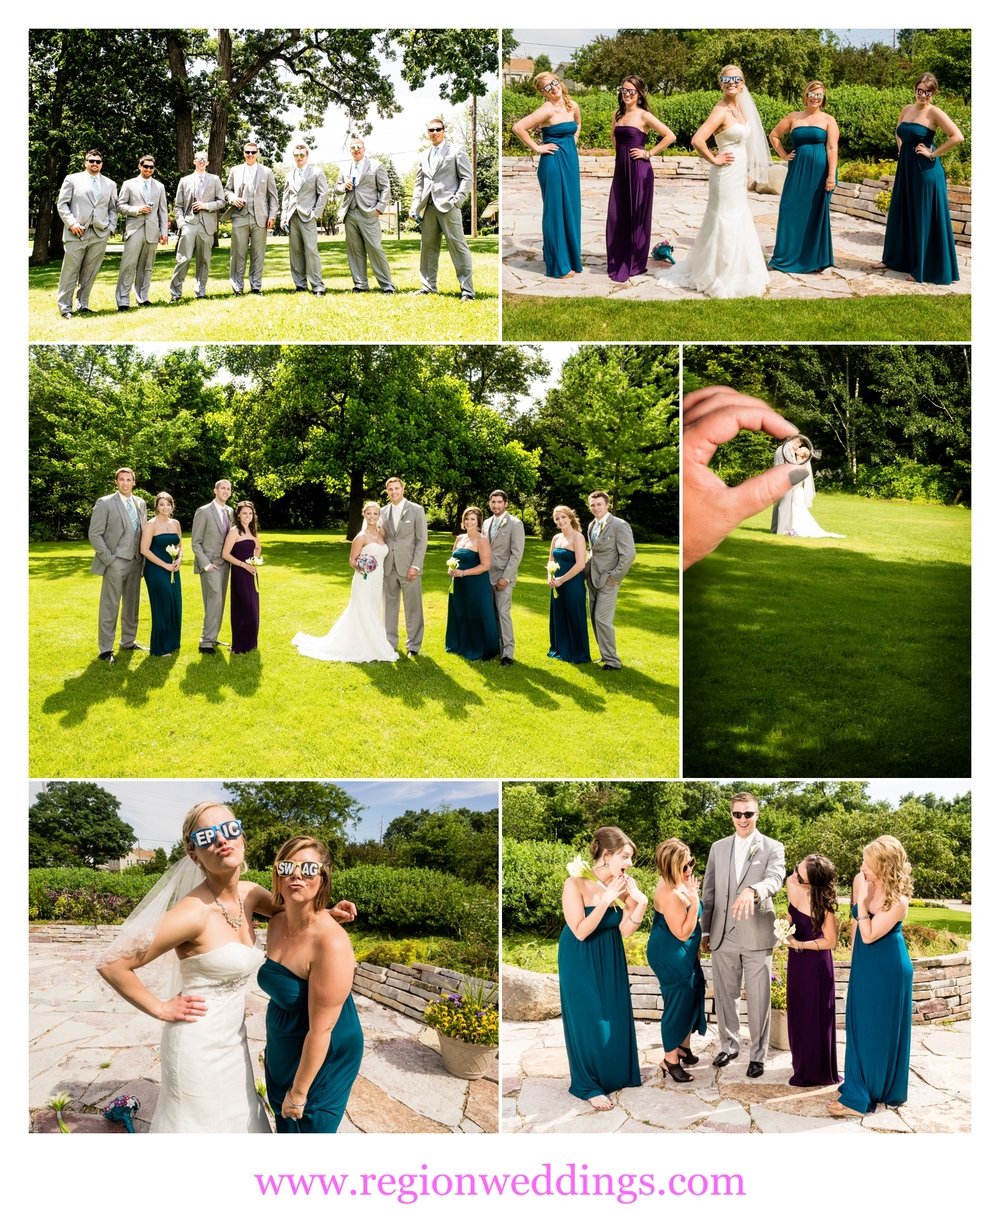 Fun wedding photos at Ogden Garden in Valparaiso, Indiana.